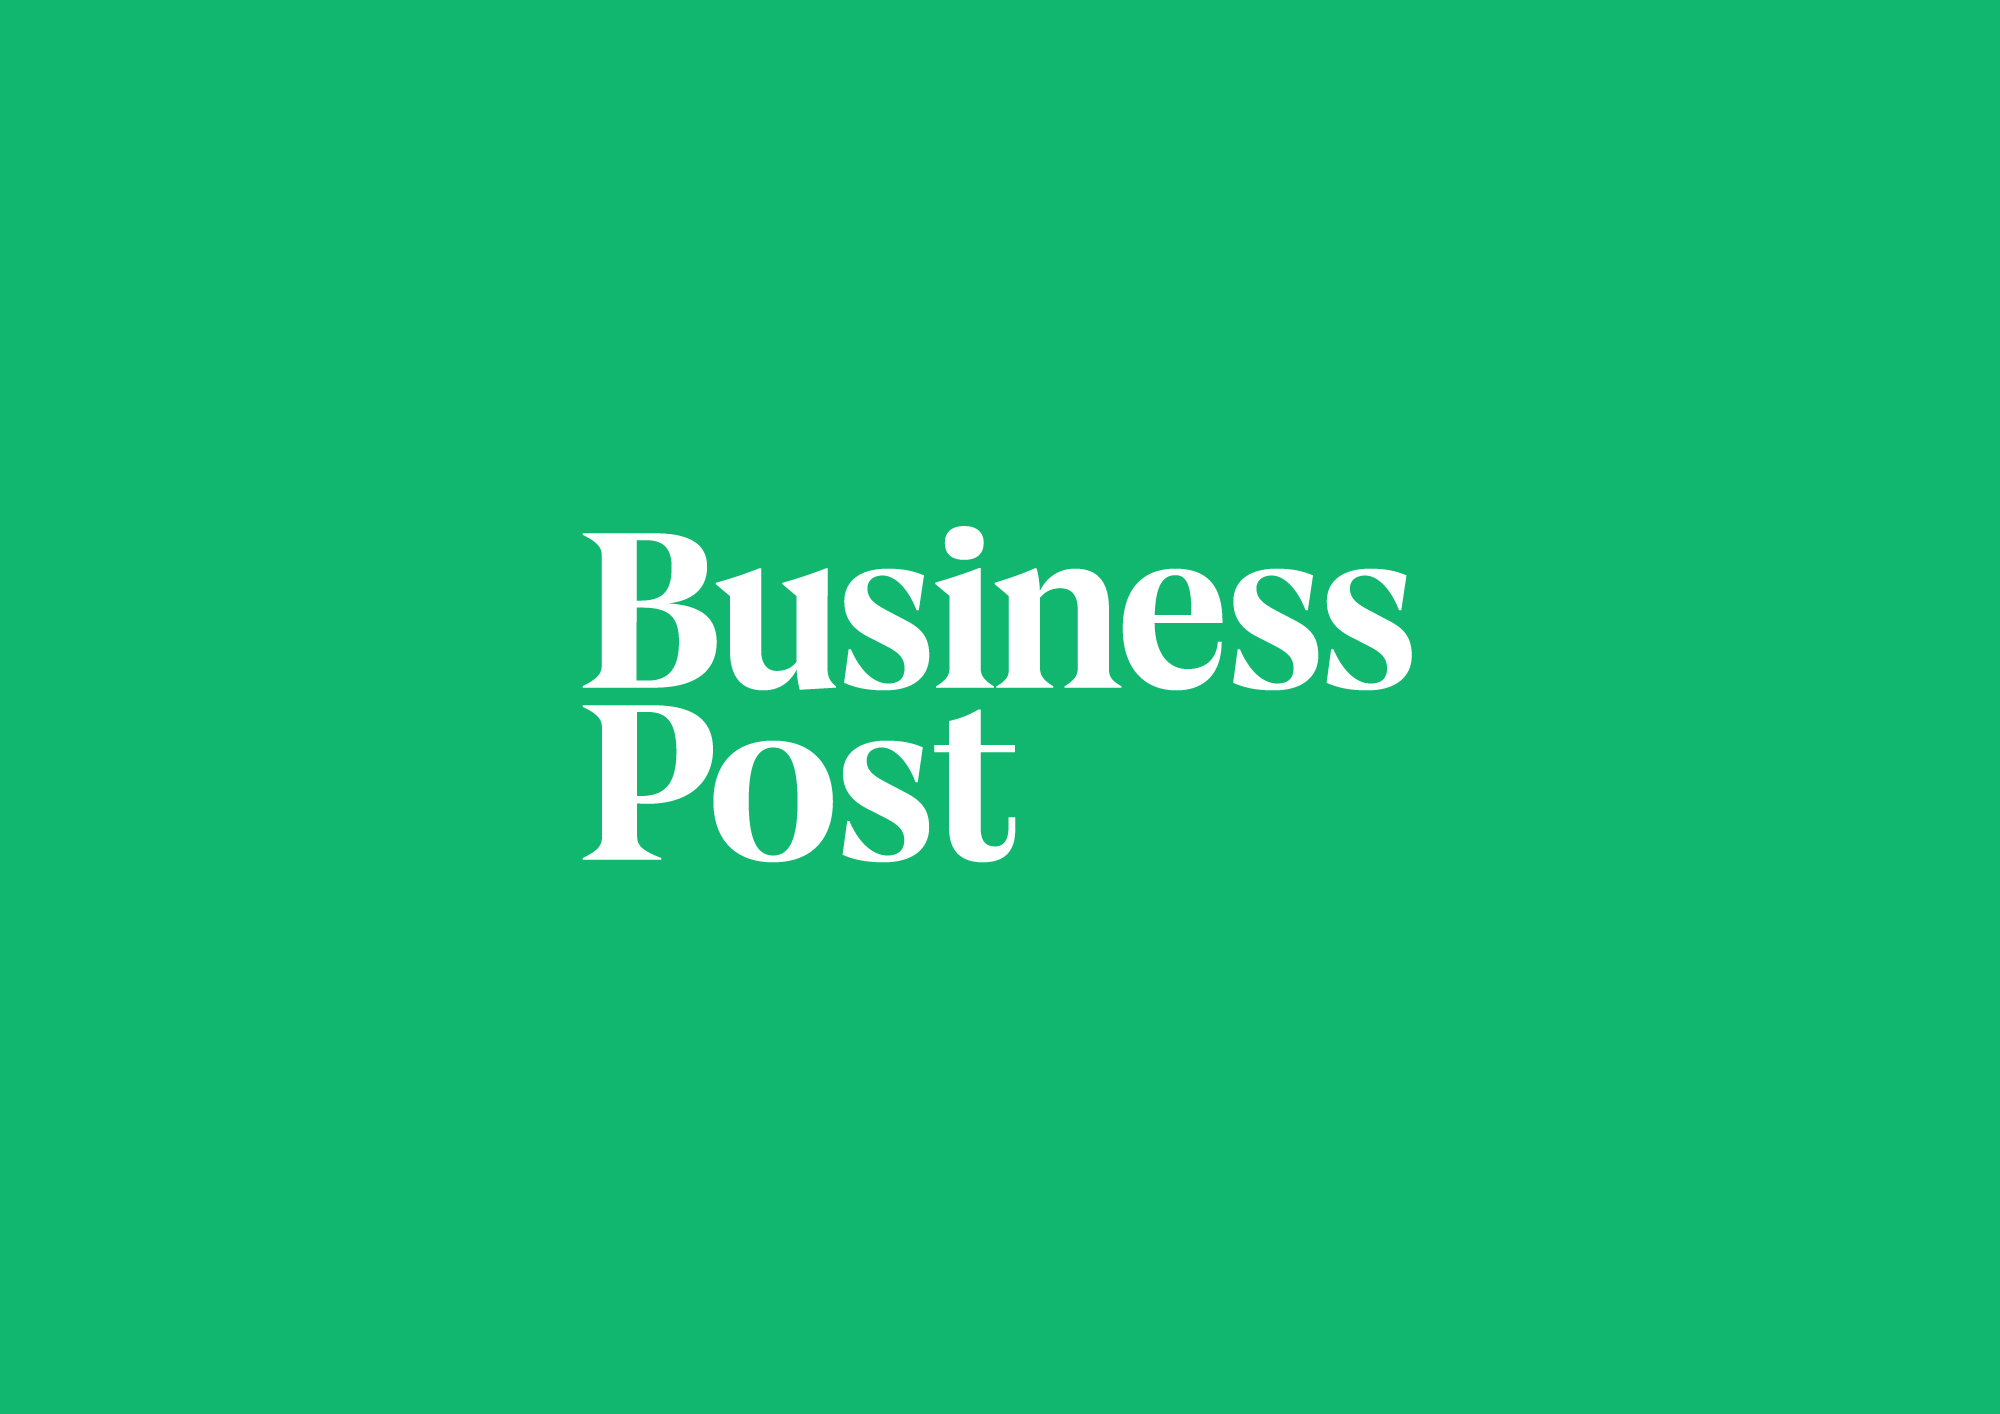 Cover image: Business Post